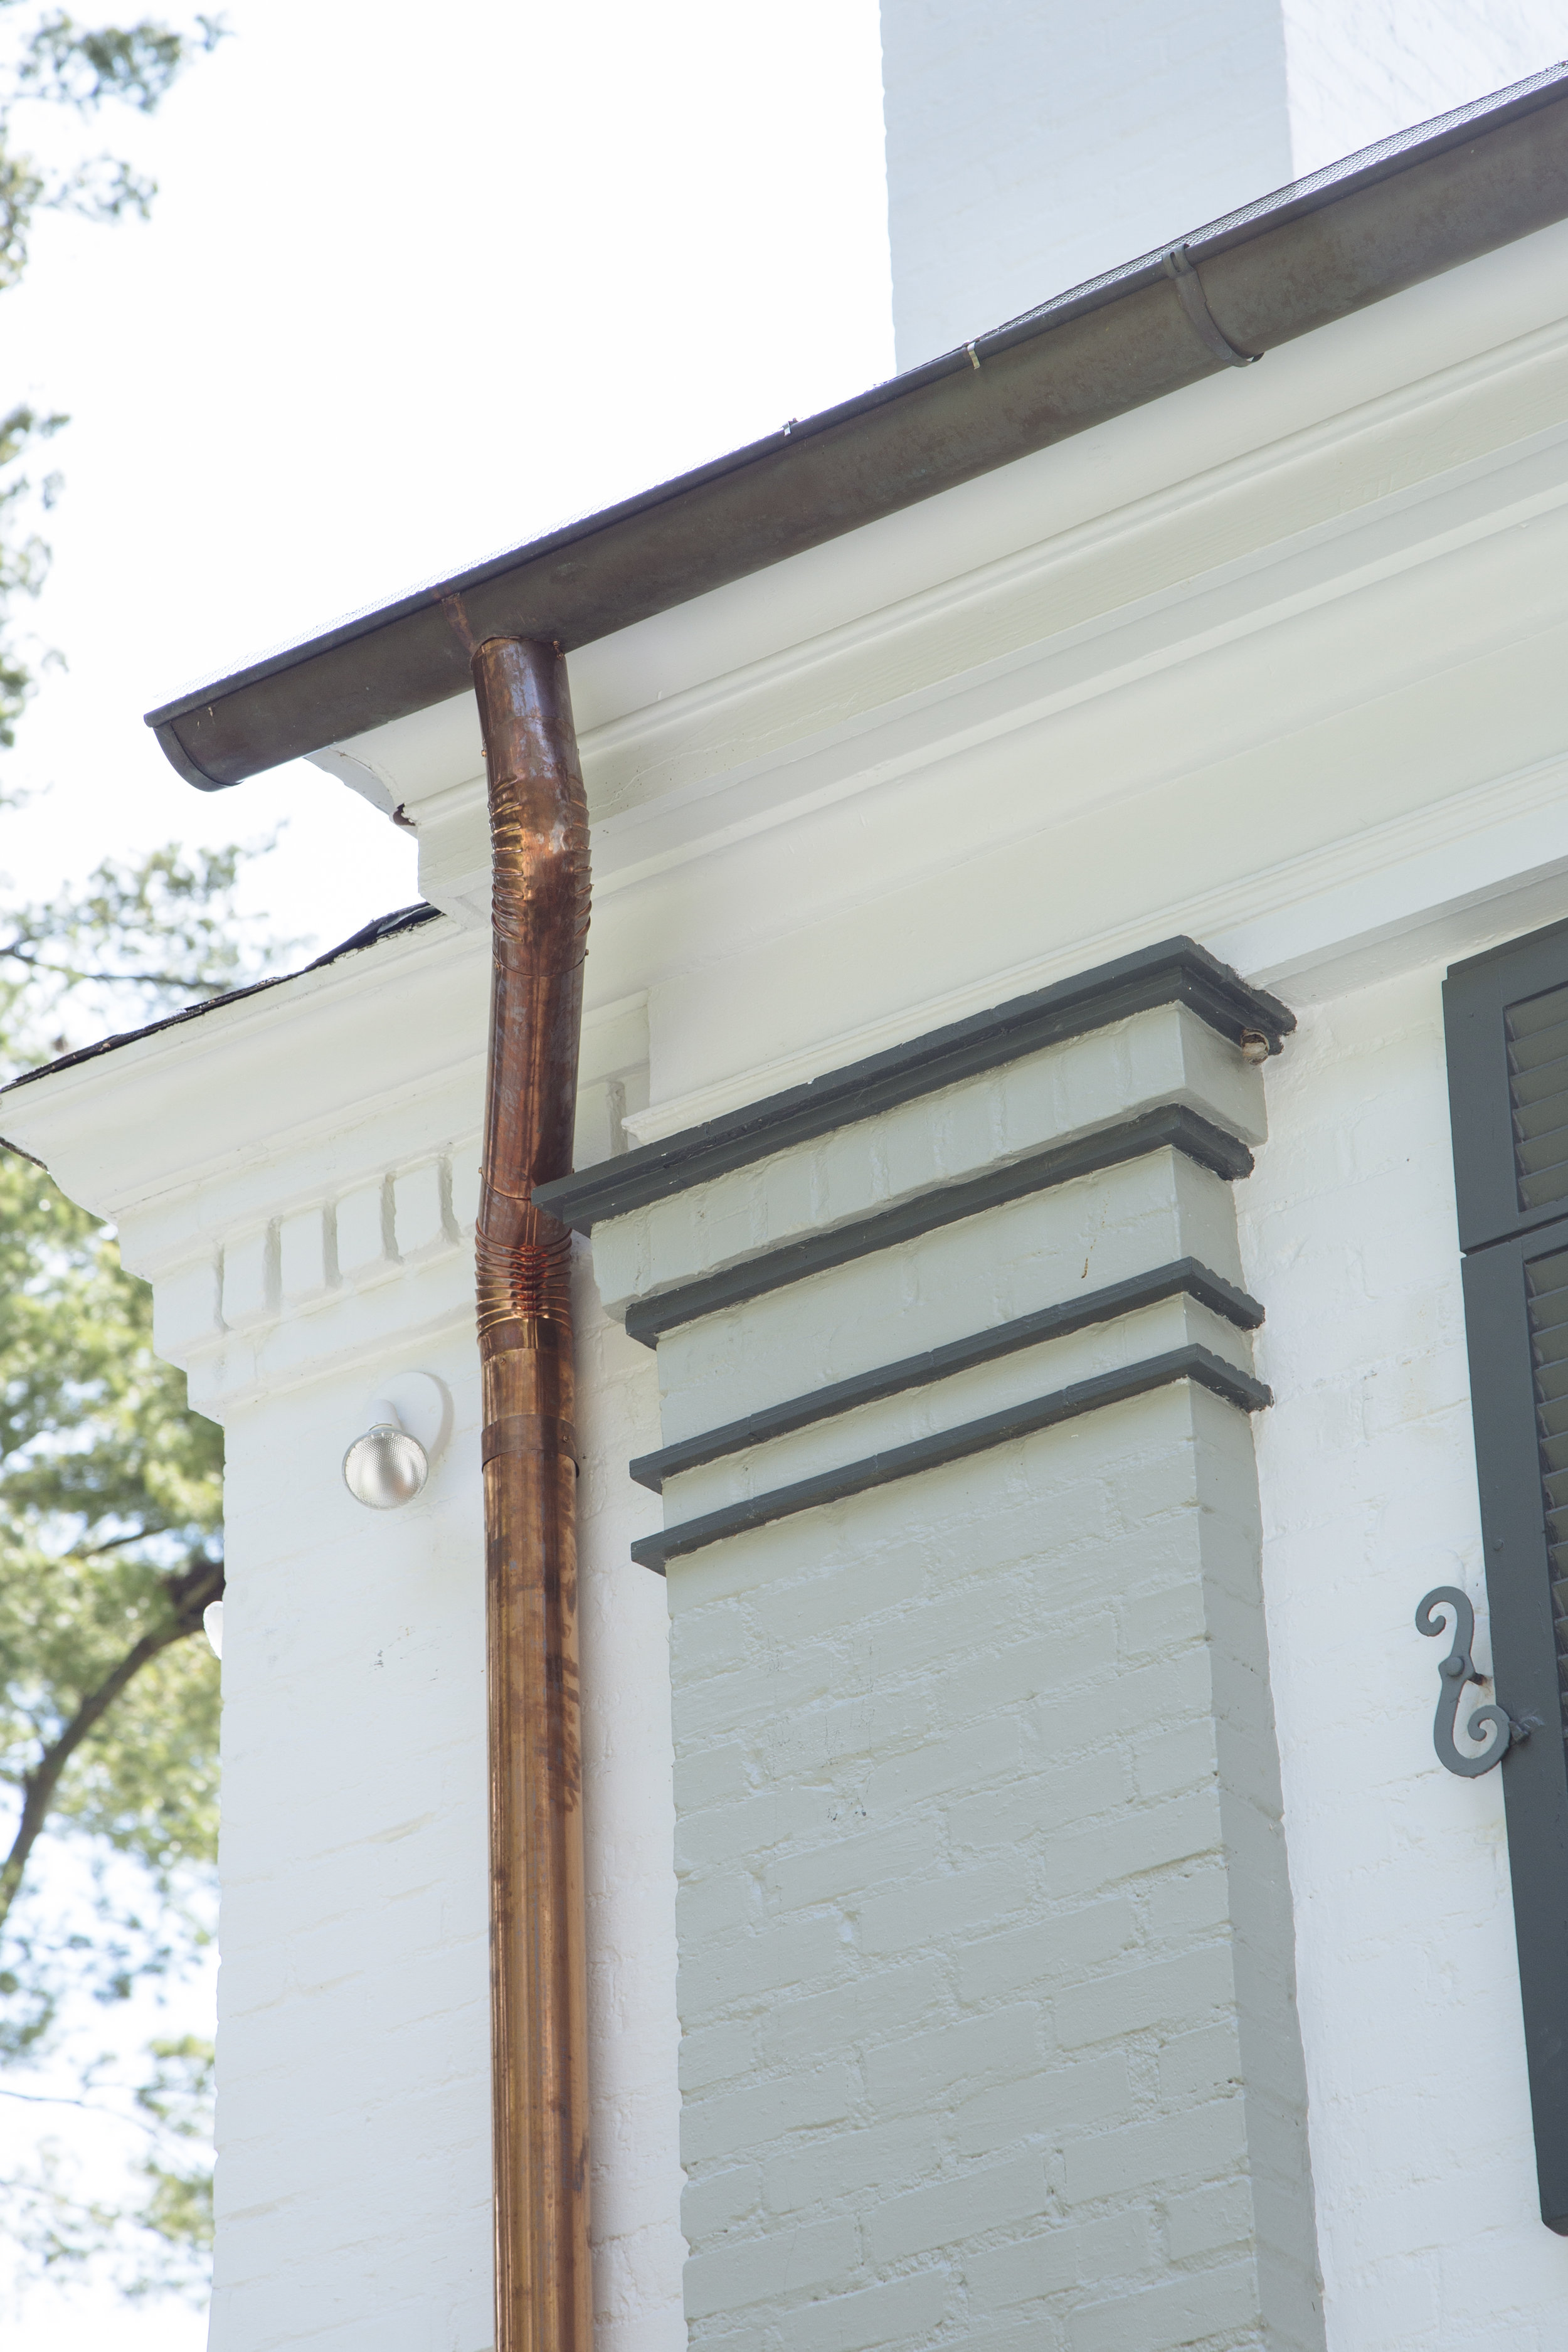 White Brick Home with Copper Gutter Detailing